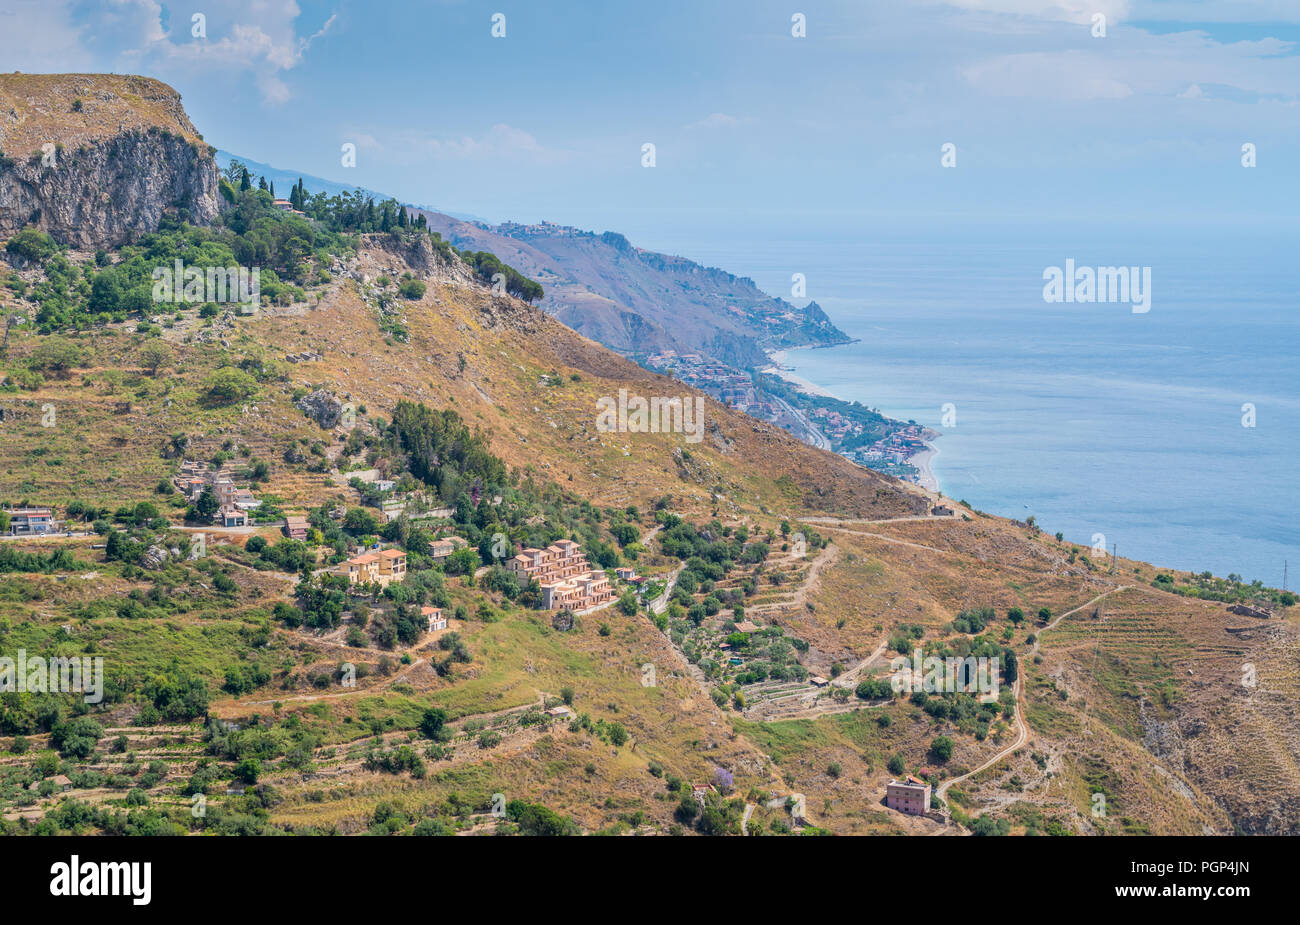 Panoramic view from Castelmola, an ancient medieval village situated above Taormina, on the top of the mountain Mola. Sicily, Italy. Stock Photo